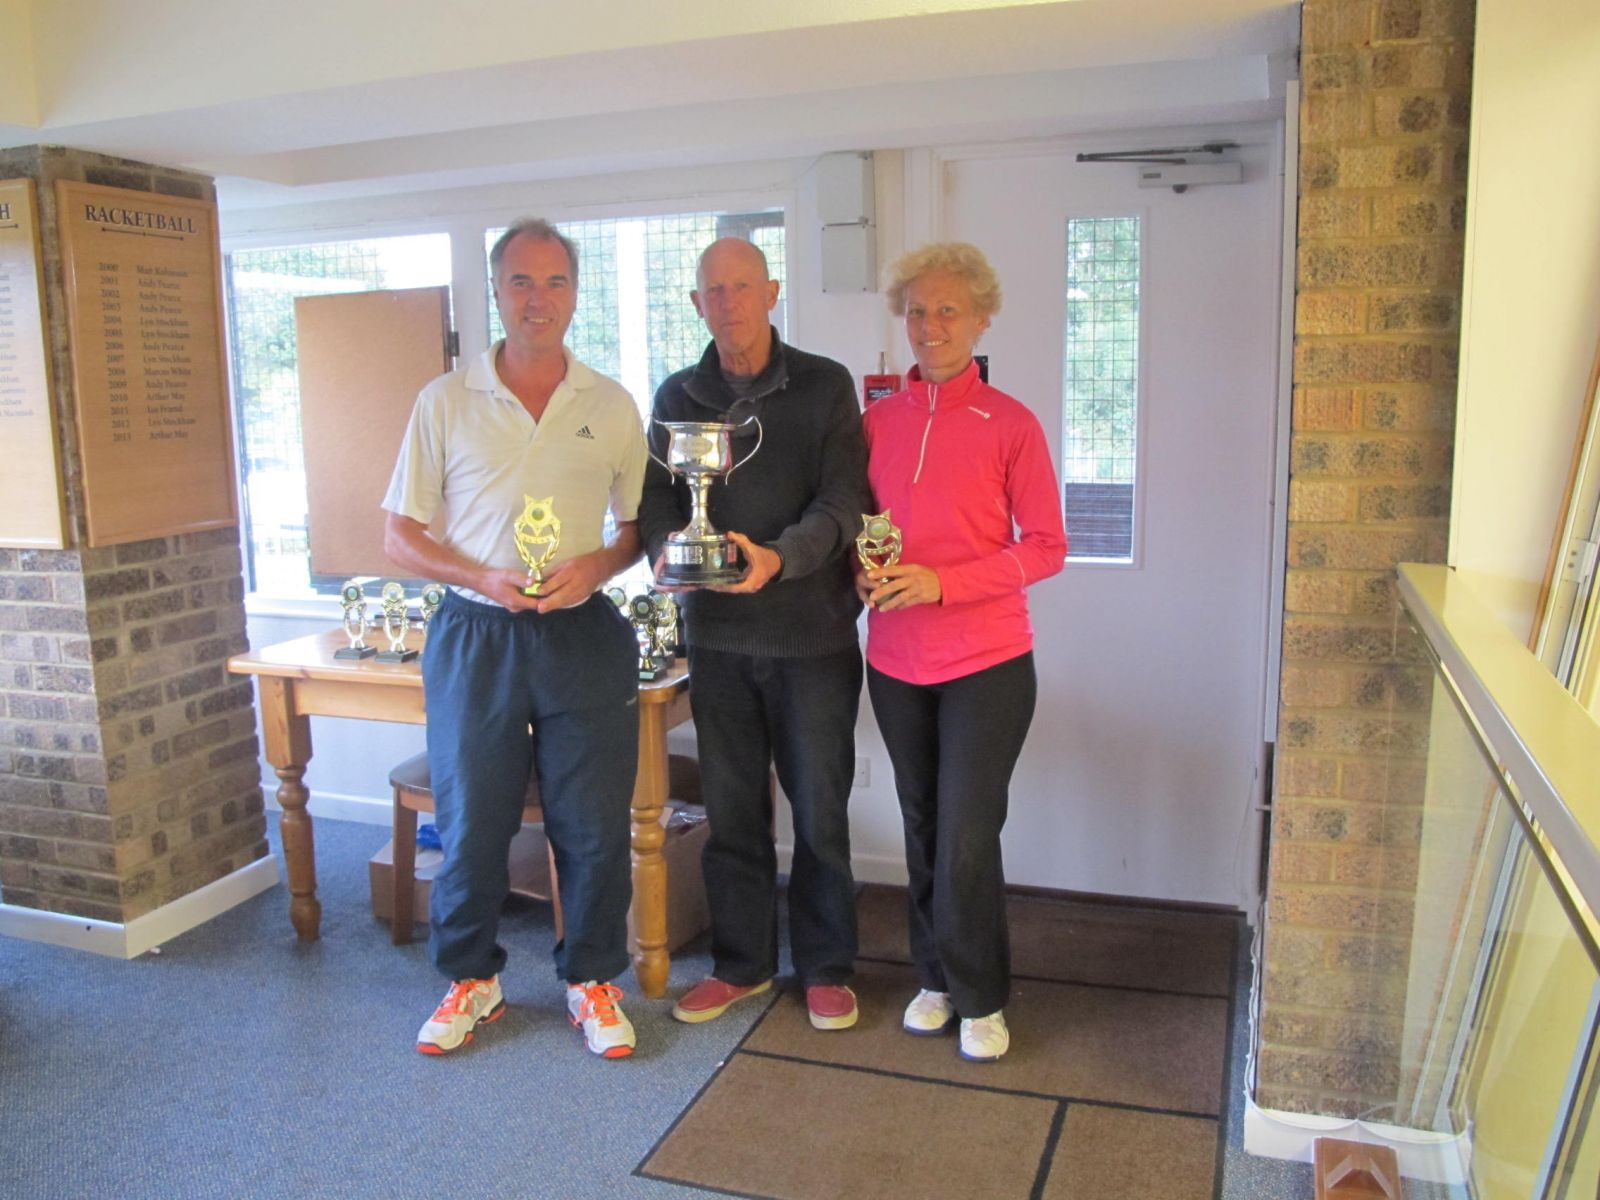 Adam Lawrence & Yvonne Henderson, Mixed Doubles Champions with Mike Henderson